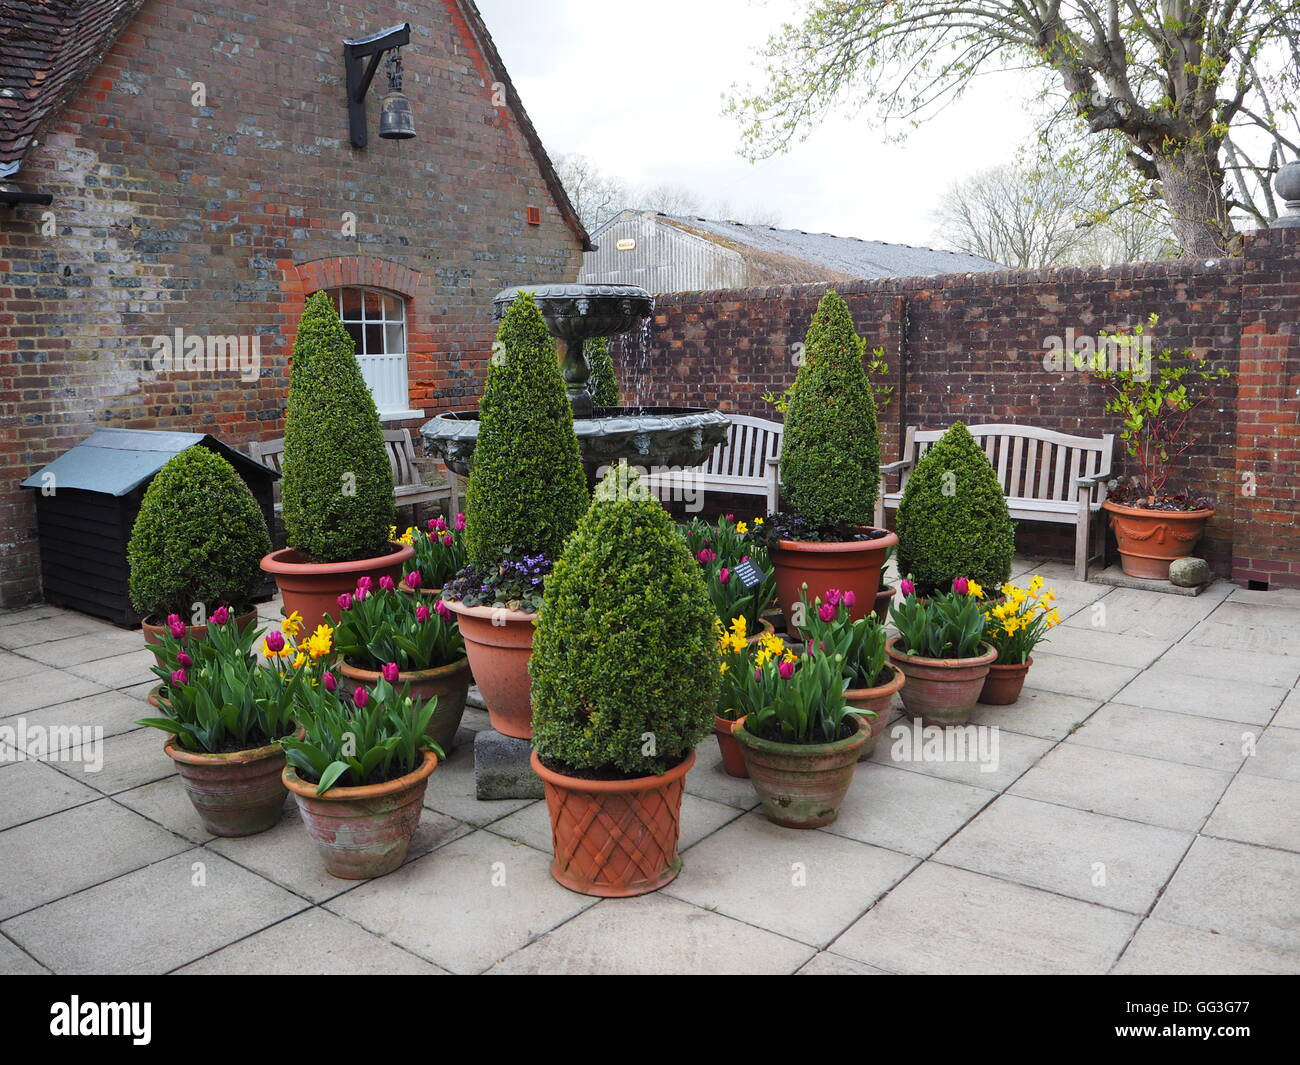 Chenies Manor courtyard with water feature and planted tubs. Seasonal spring bulbs and conifers in terracotta pots. - Stock Image